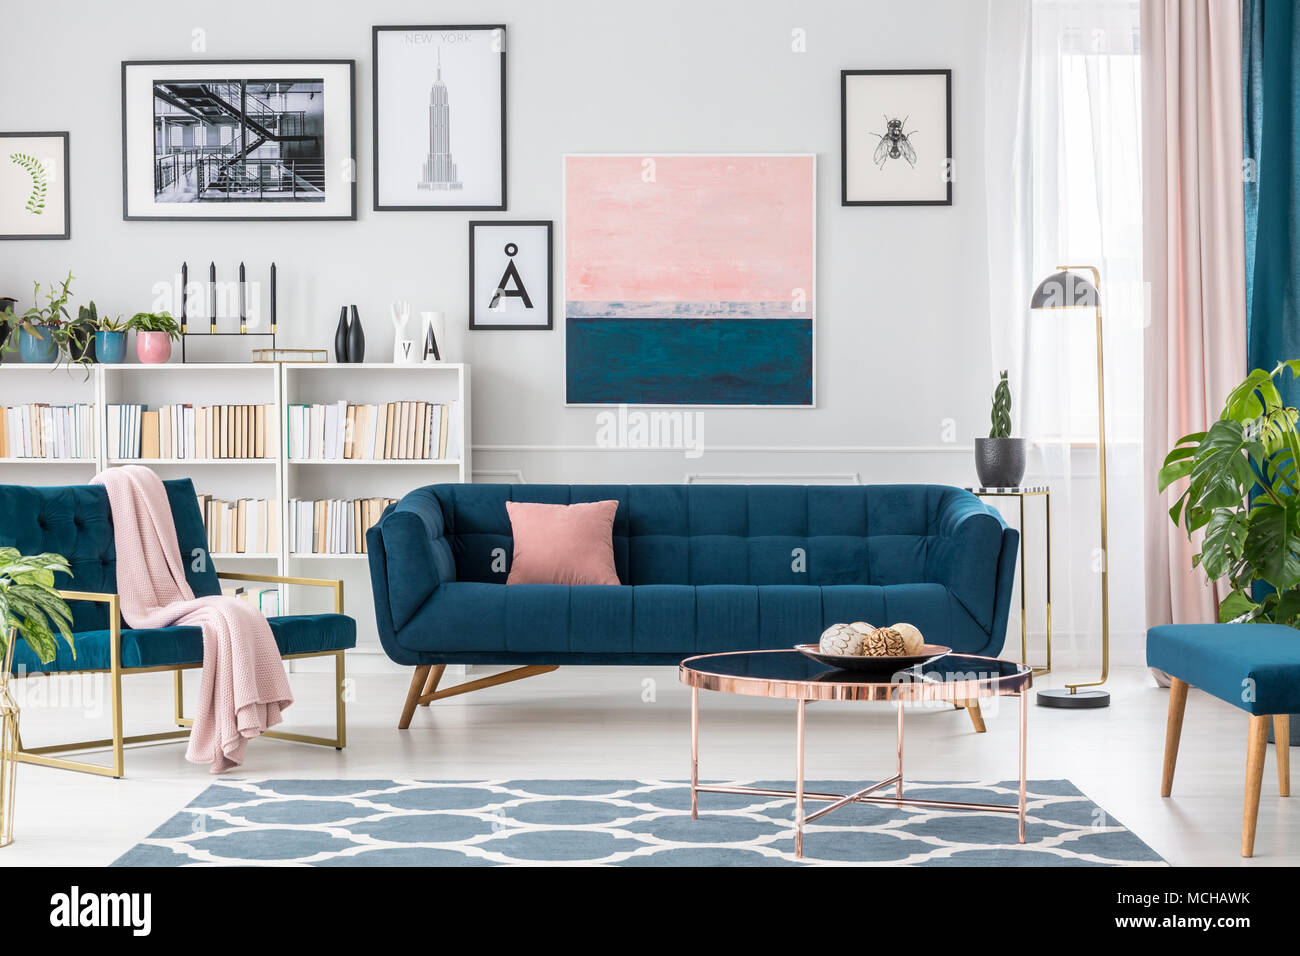 Modern living room interior with blue sofa, rug, art ...